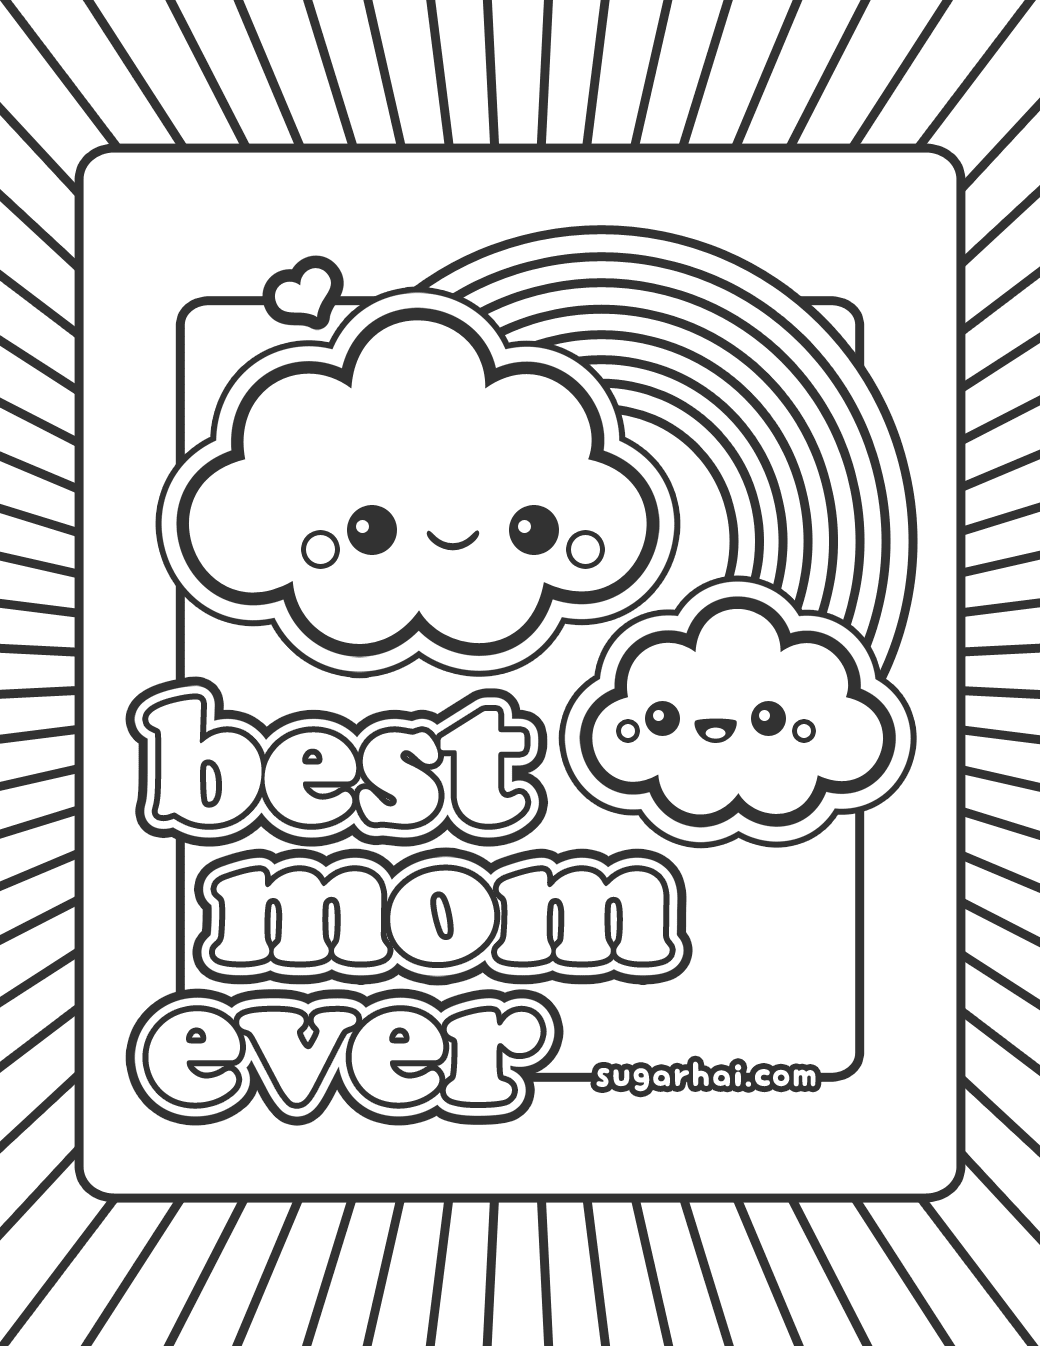 Best Teacher Ever Coloring Pages